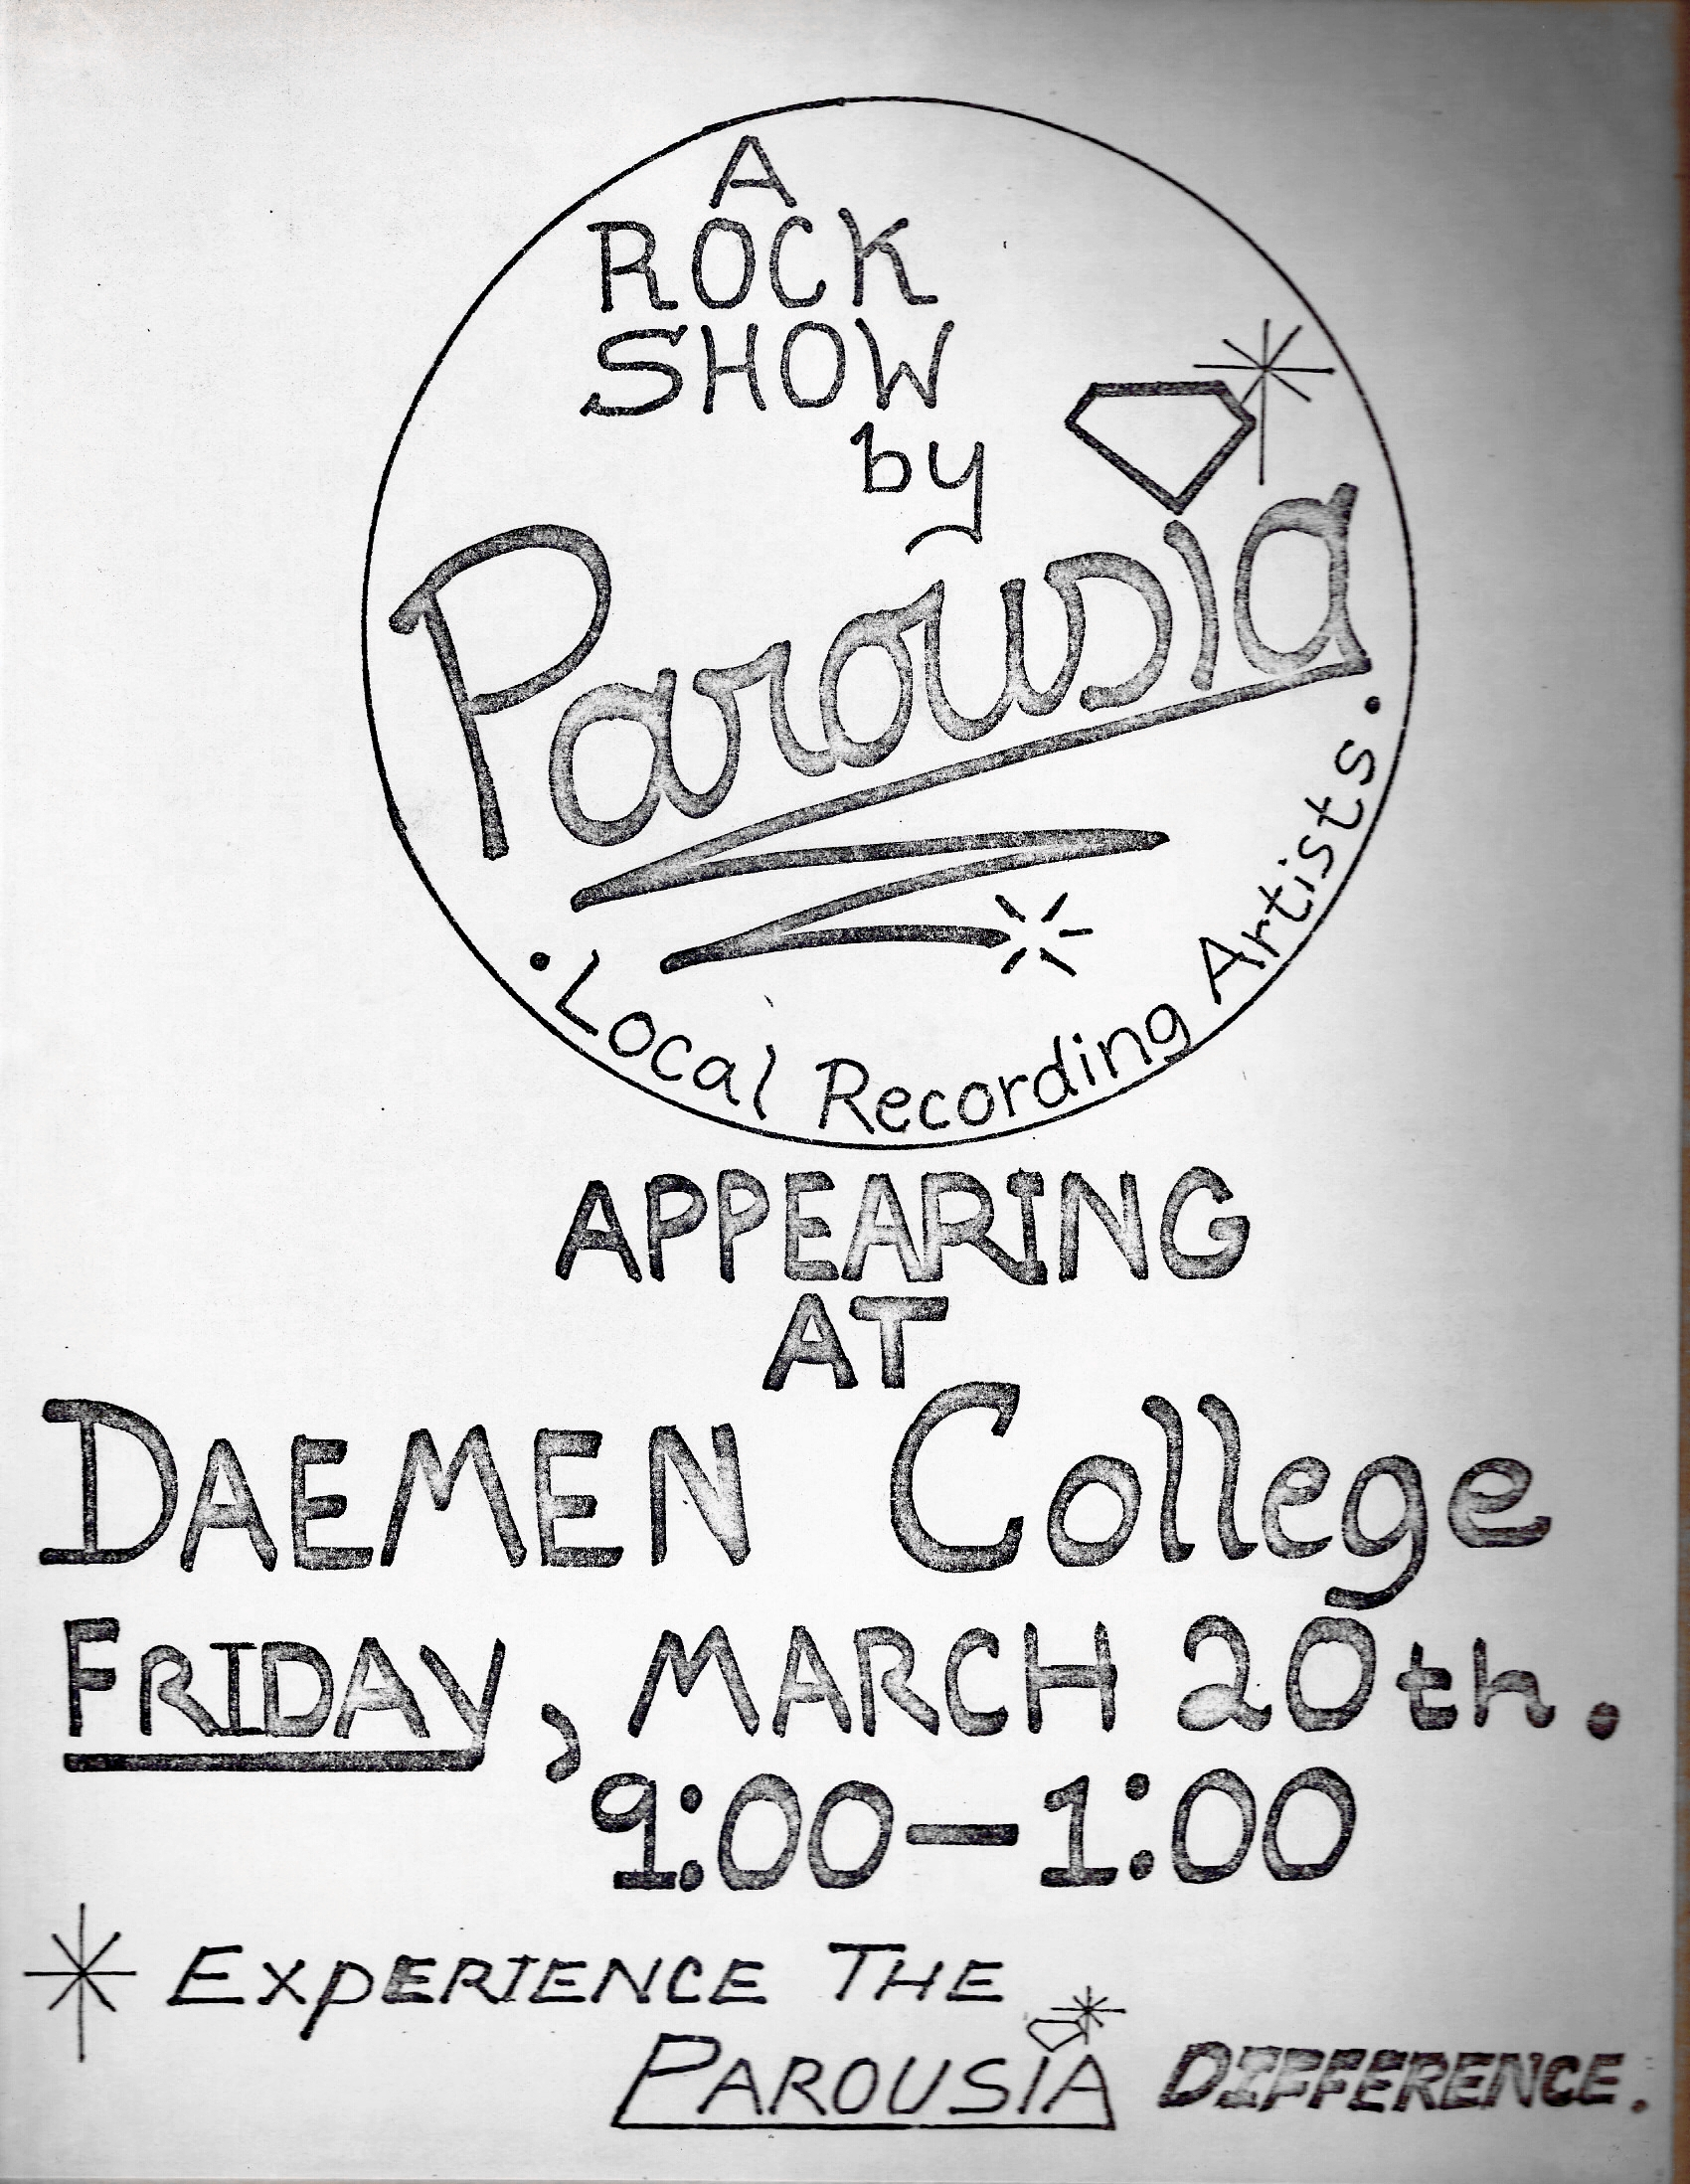 Daemen College - Friday, 03.20.1981